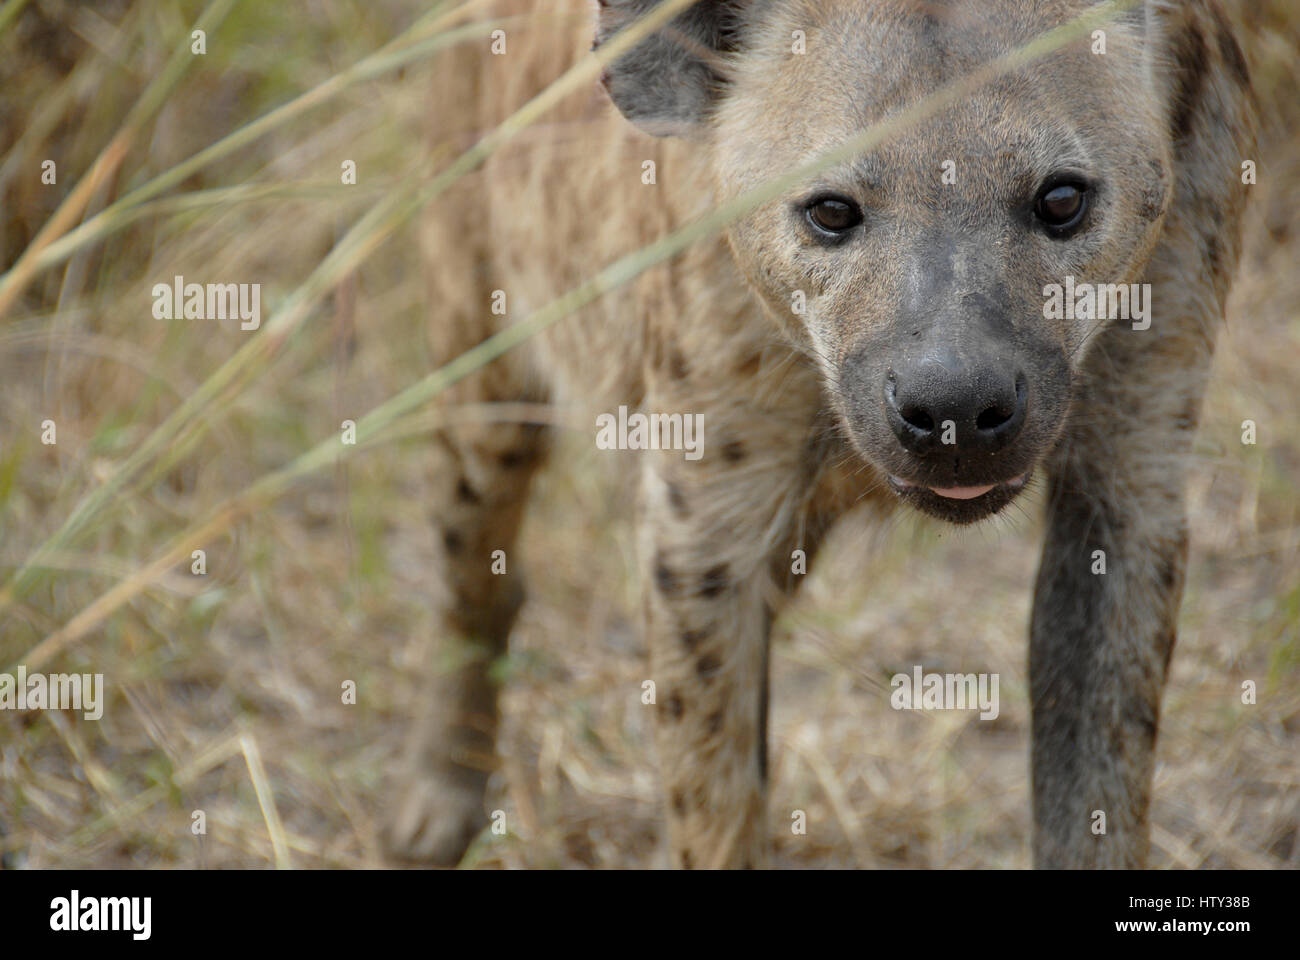 Spotted hyena, Kruger National Park, South Africa Stock Photo